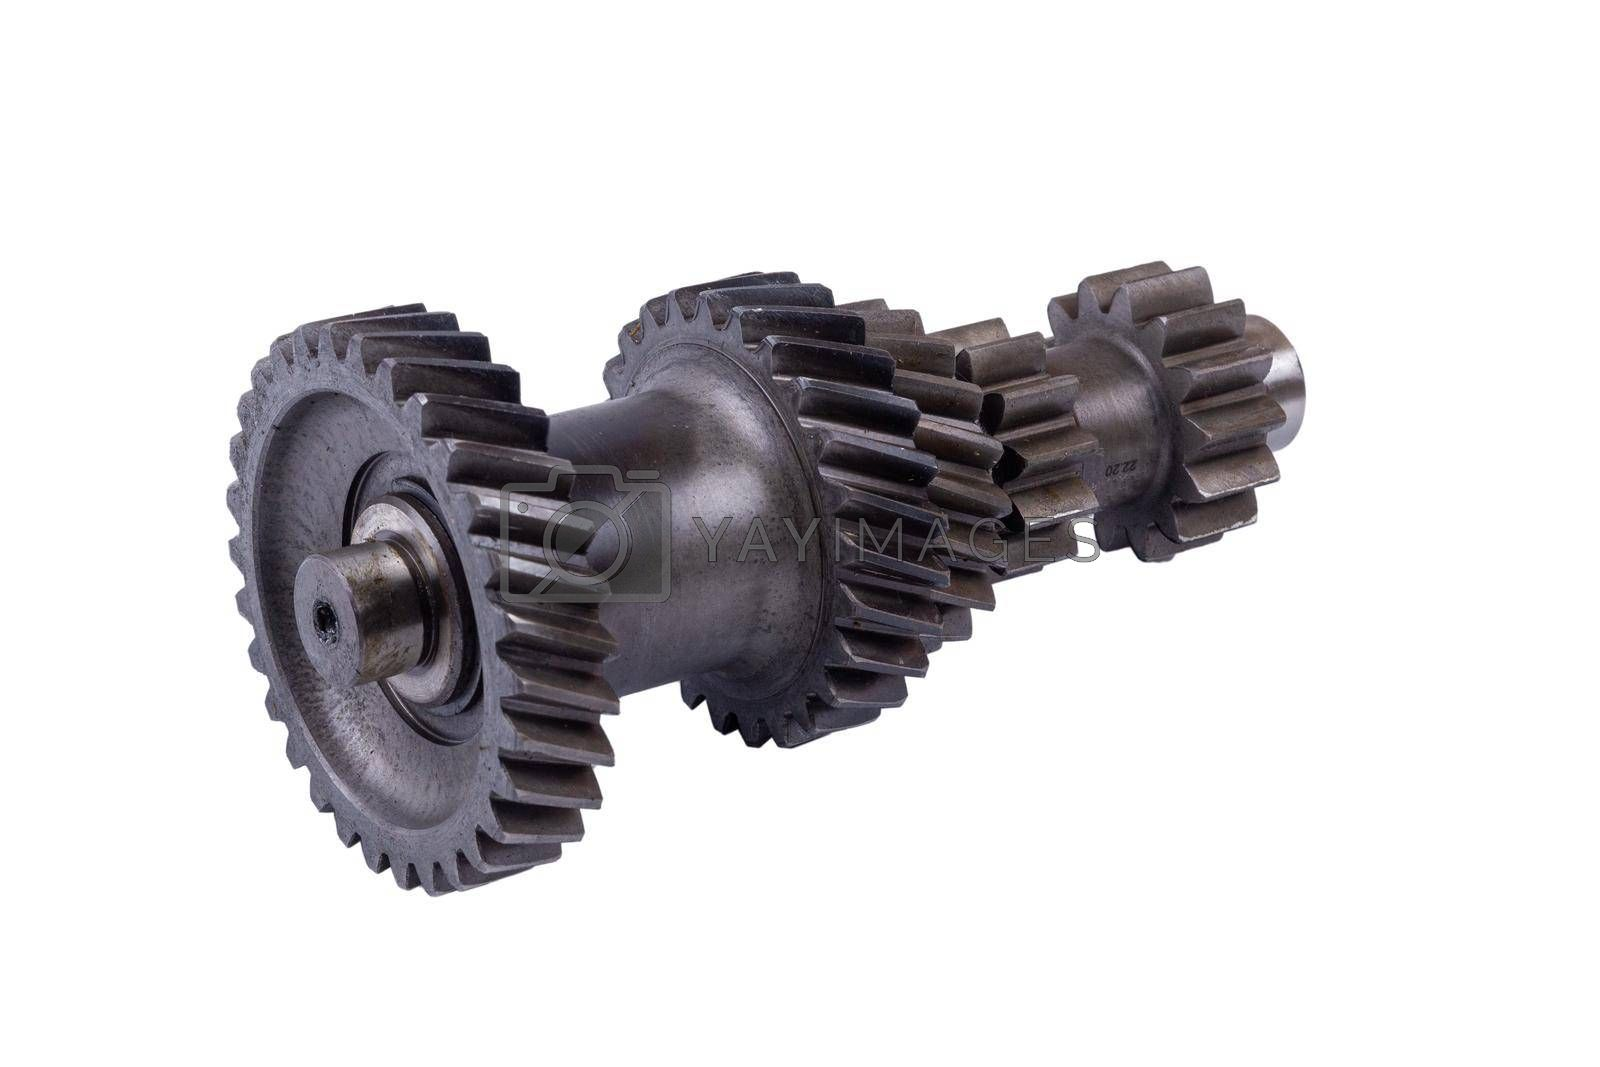 parts that have been stored in the warehouse for a long time. Transmission gears of the gearshift torque. Conceptually mechanical background. Shiny gear box teeth